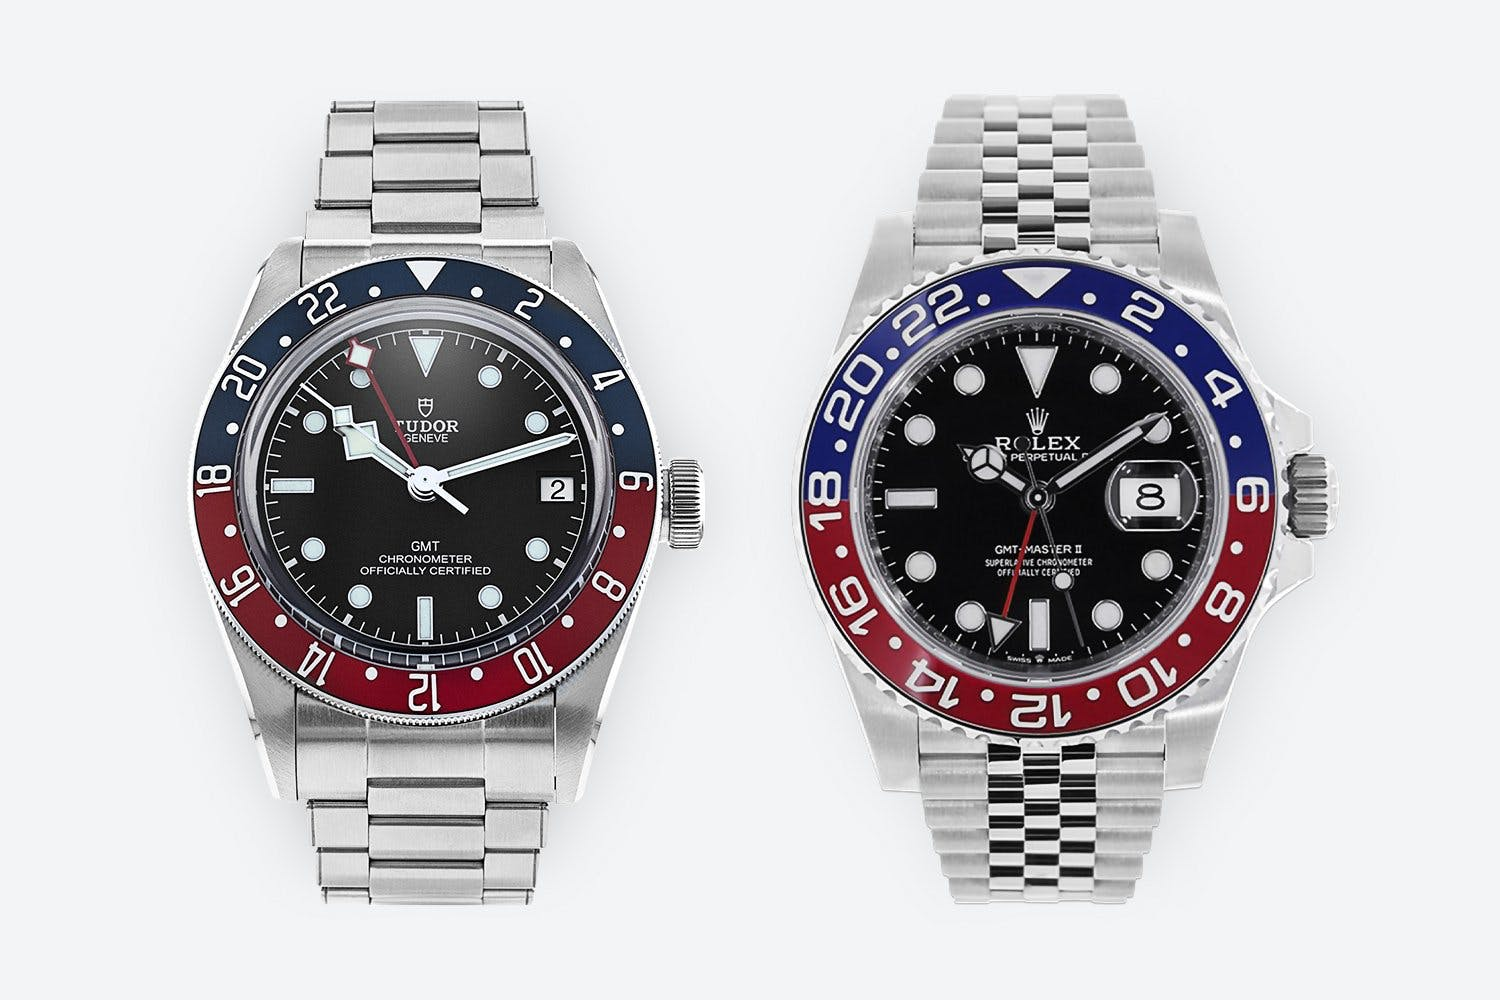 Rolex vs Tudor GMT